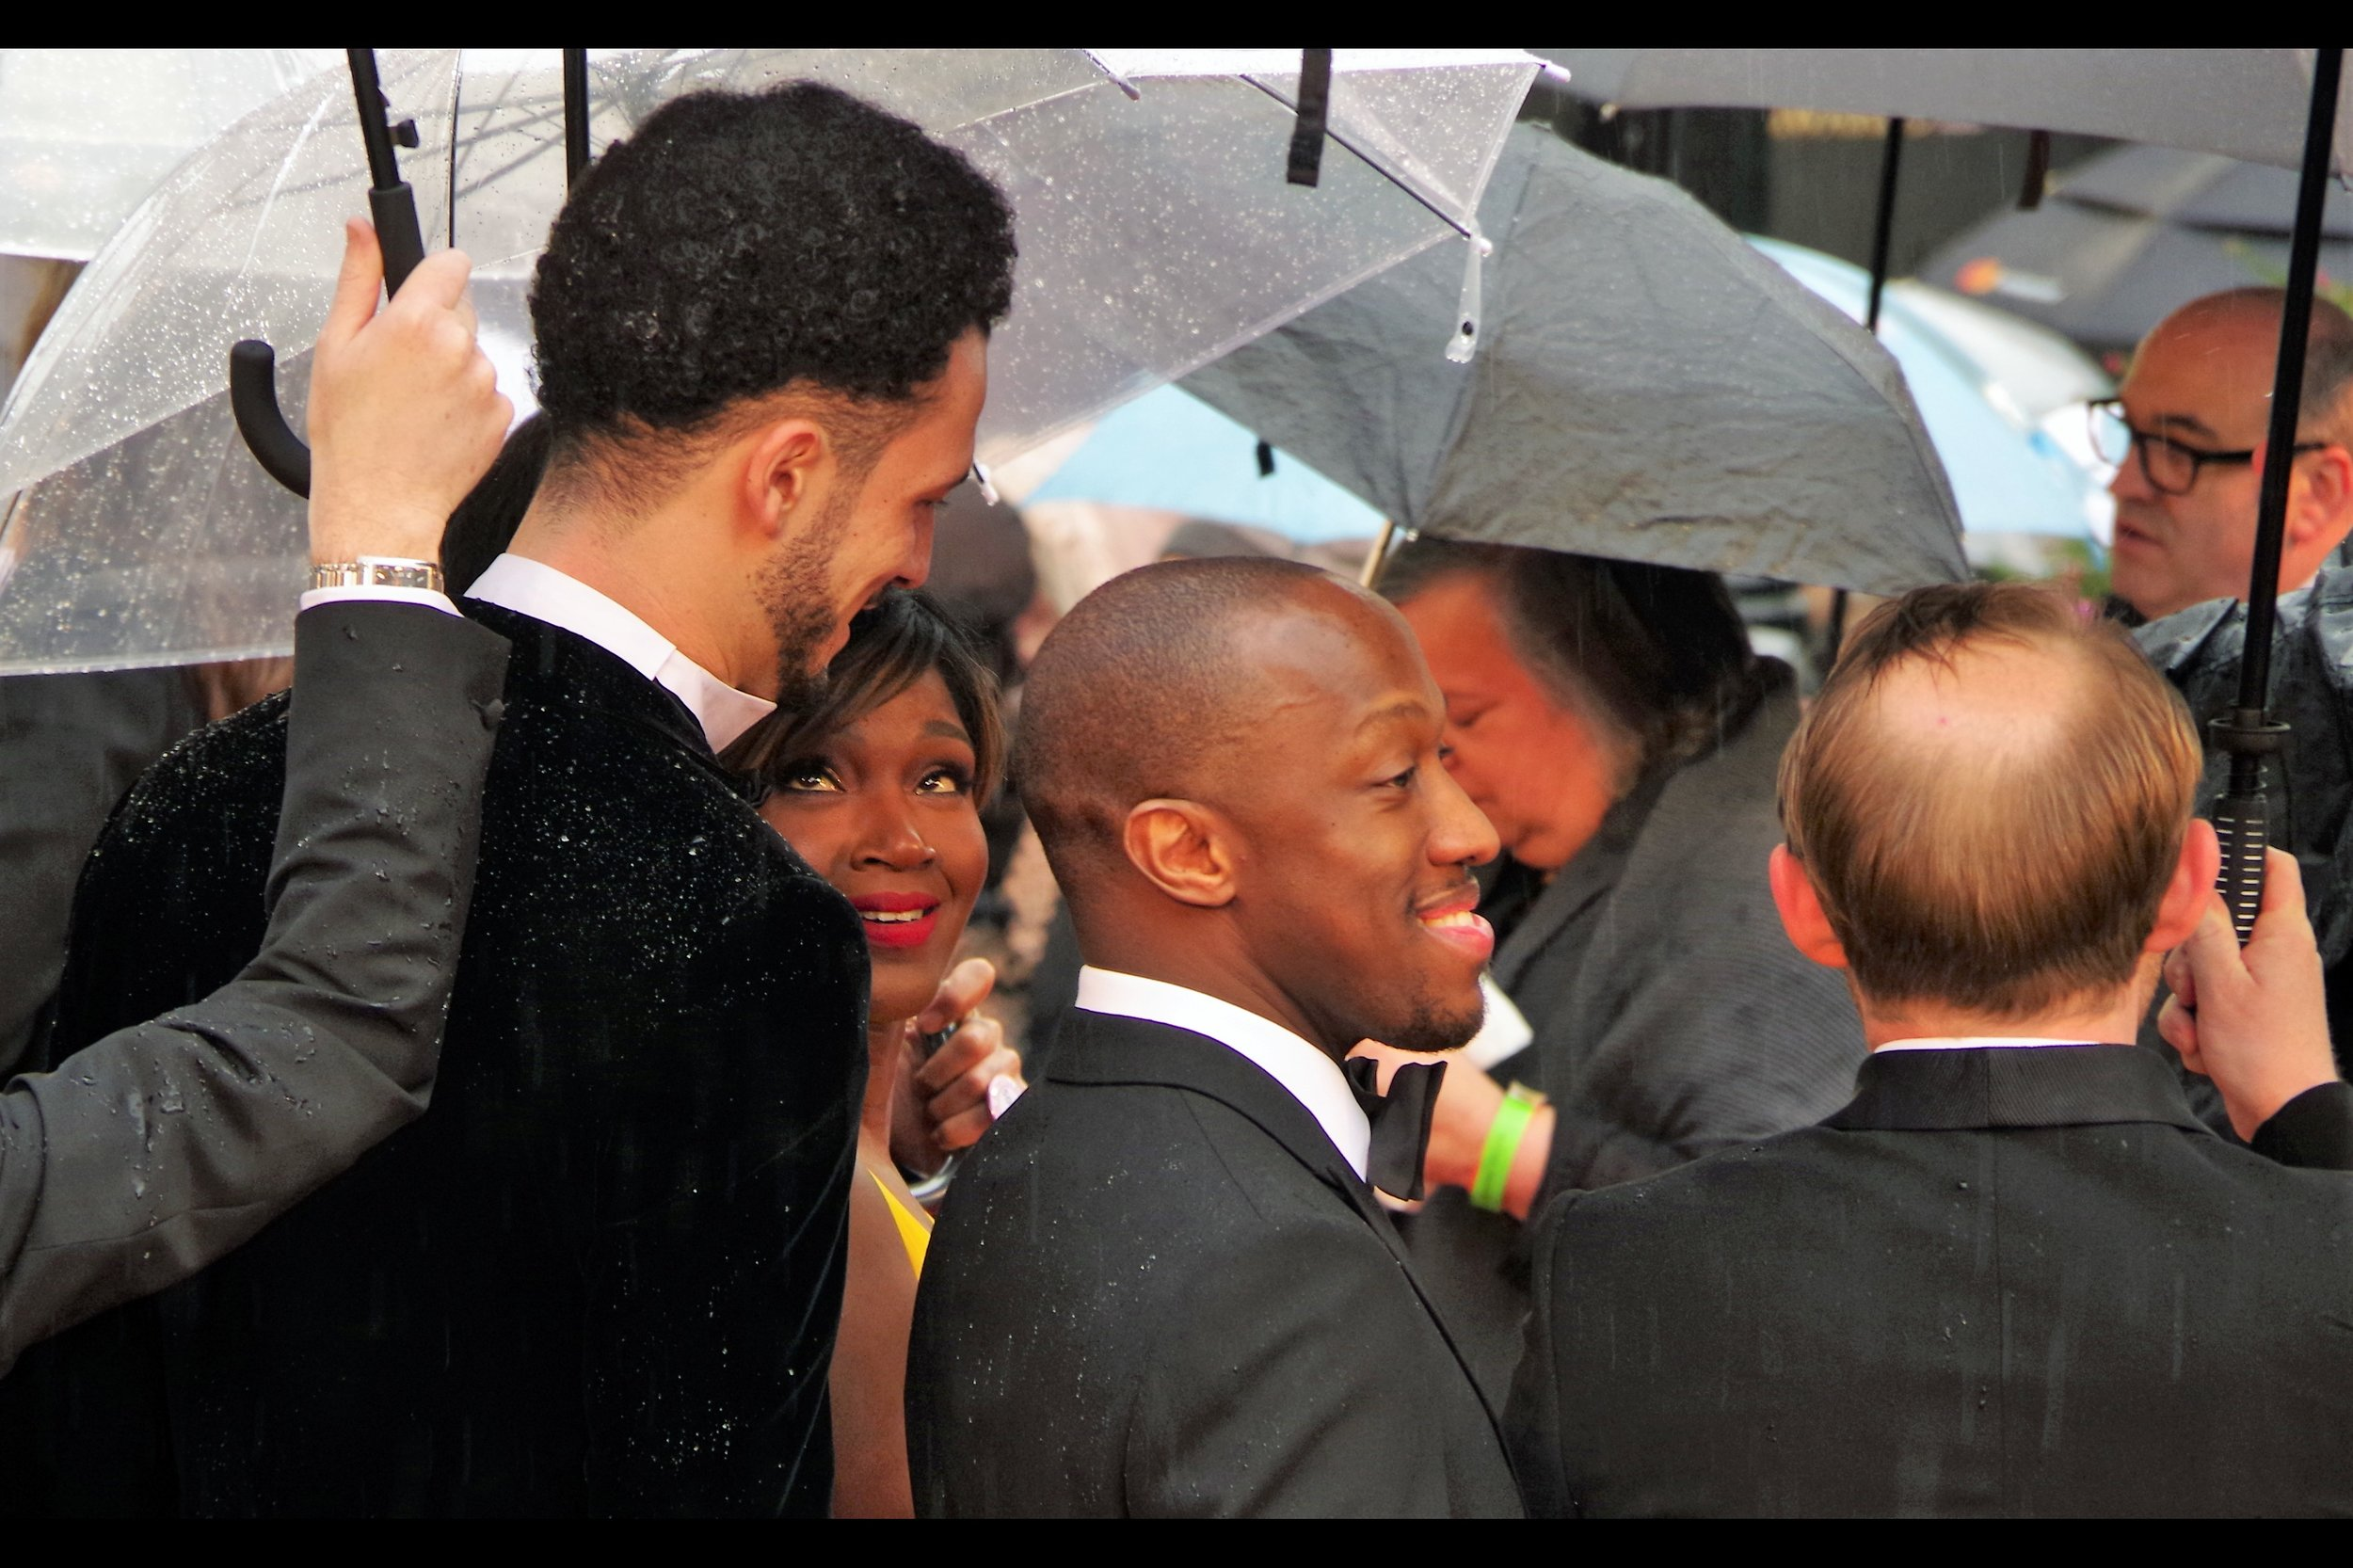 Some of the cast of the musical Hamilton. Or so I am assured. The play won 7 awards on the night, so I want to make sure I photograph as many people as possible, for the likelihood that they, like everyone else, eventually sells out to Disney and gets roles in Star Wars or a Marvel film.